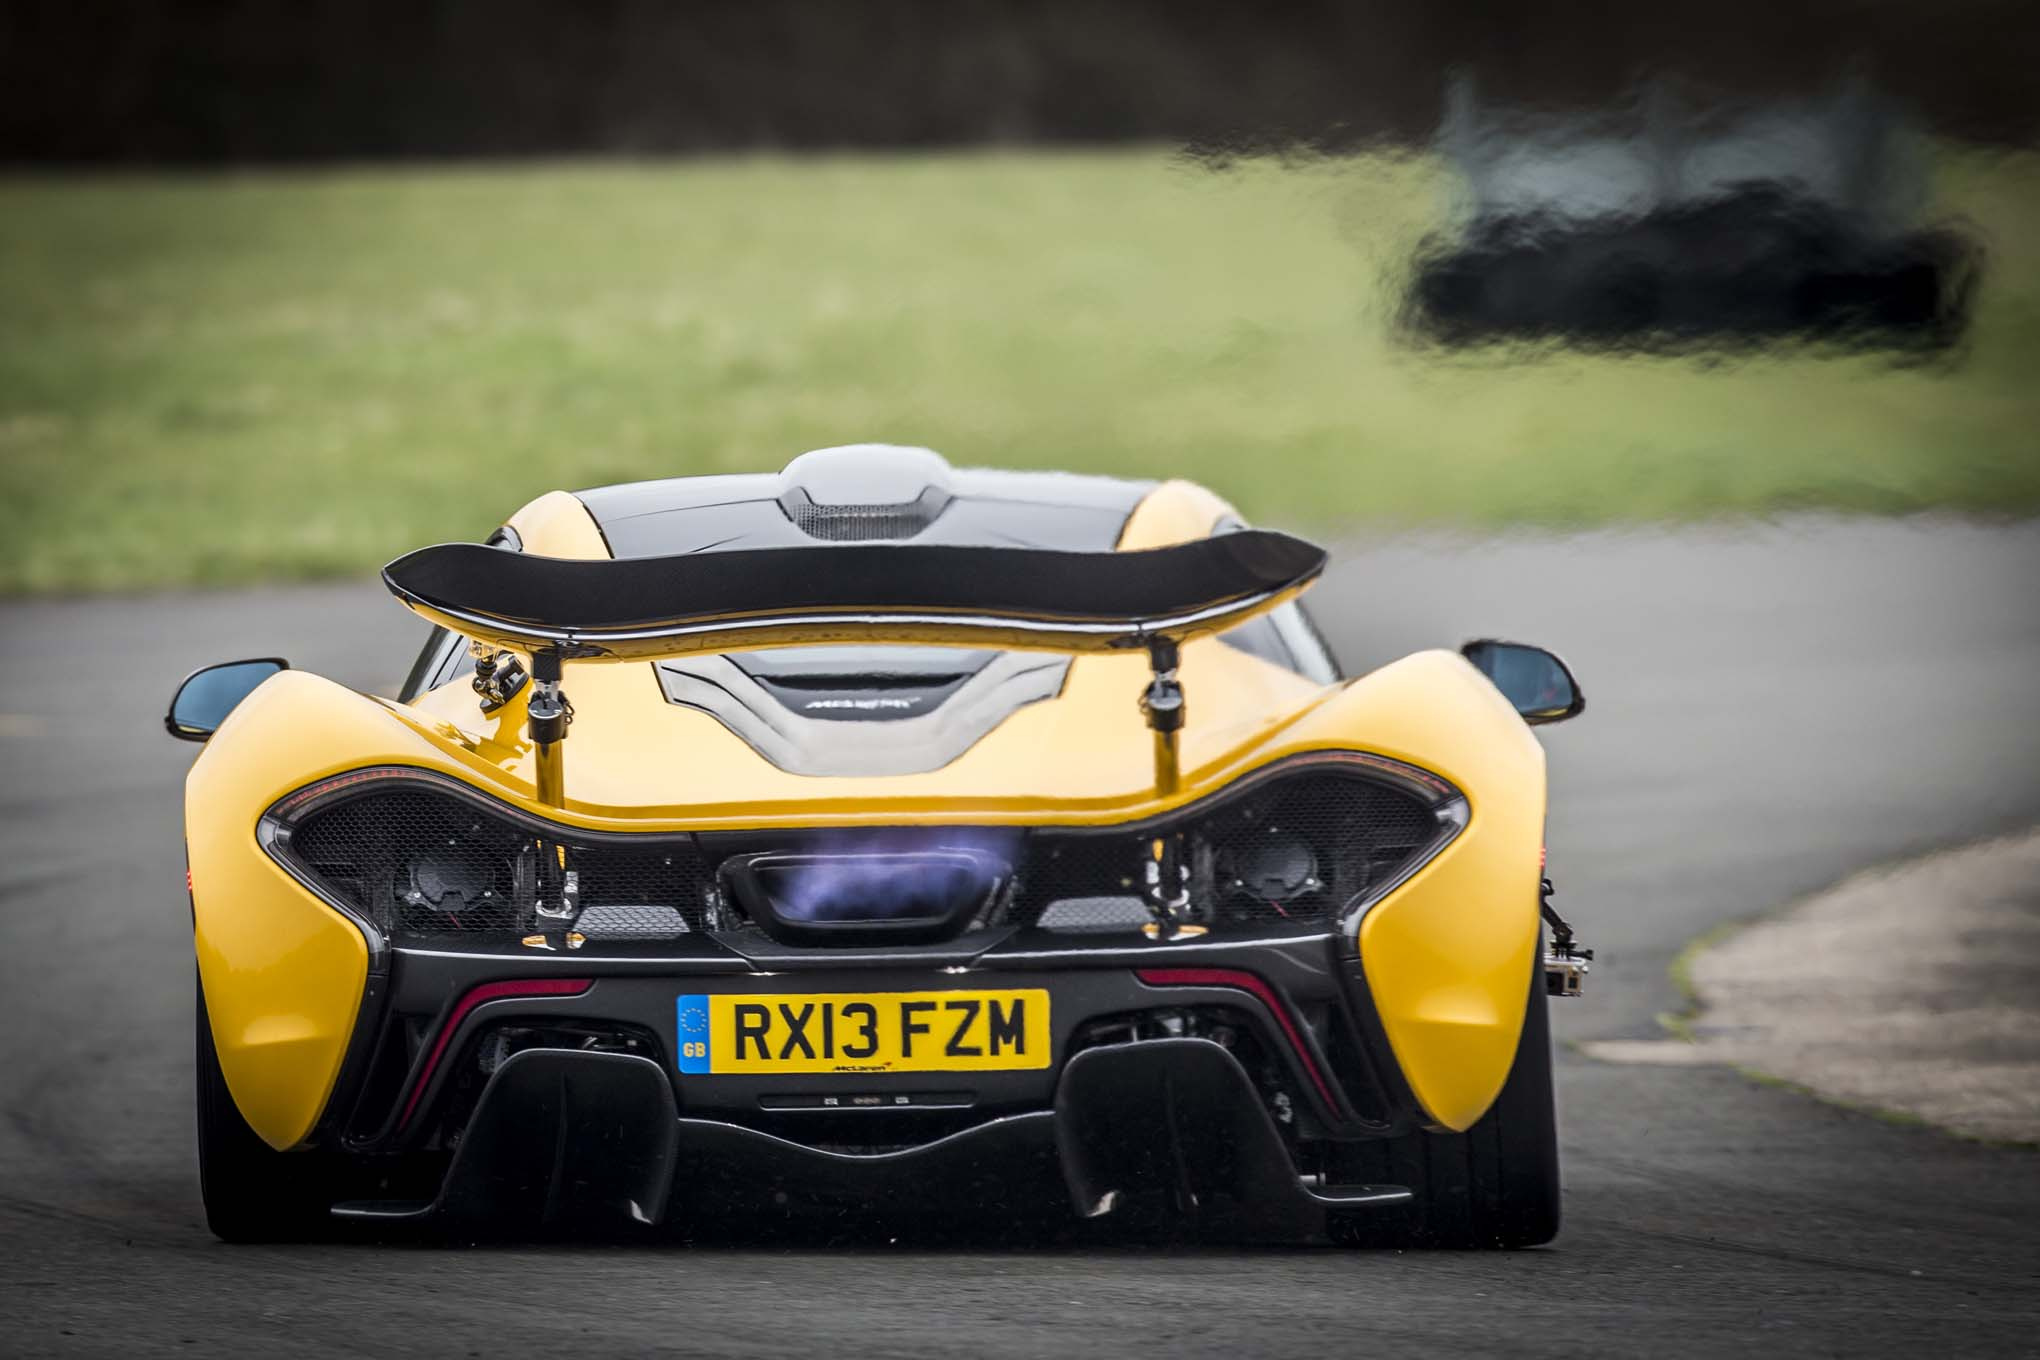 http://st.automobilemag.com/uploads/sites/11/2014/06/2014-Mclaren-P1-yellow-rear-end-in-motion1.jpg